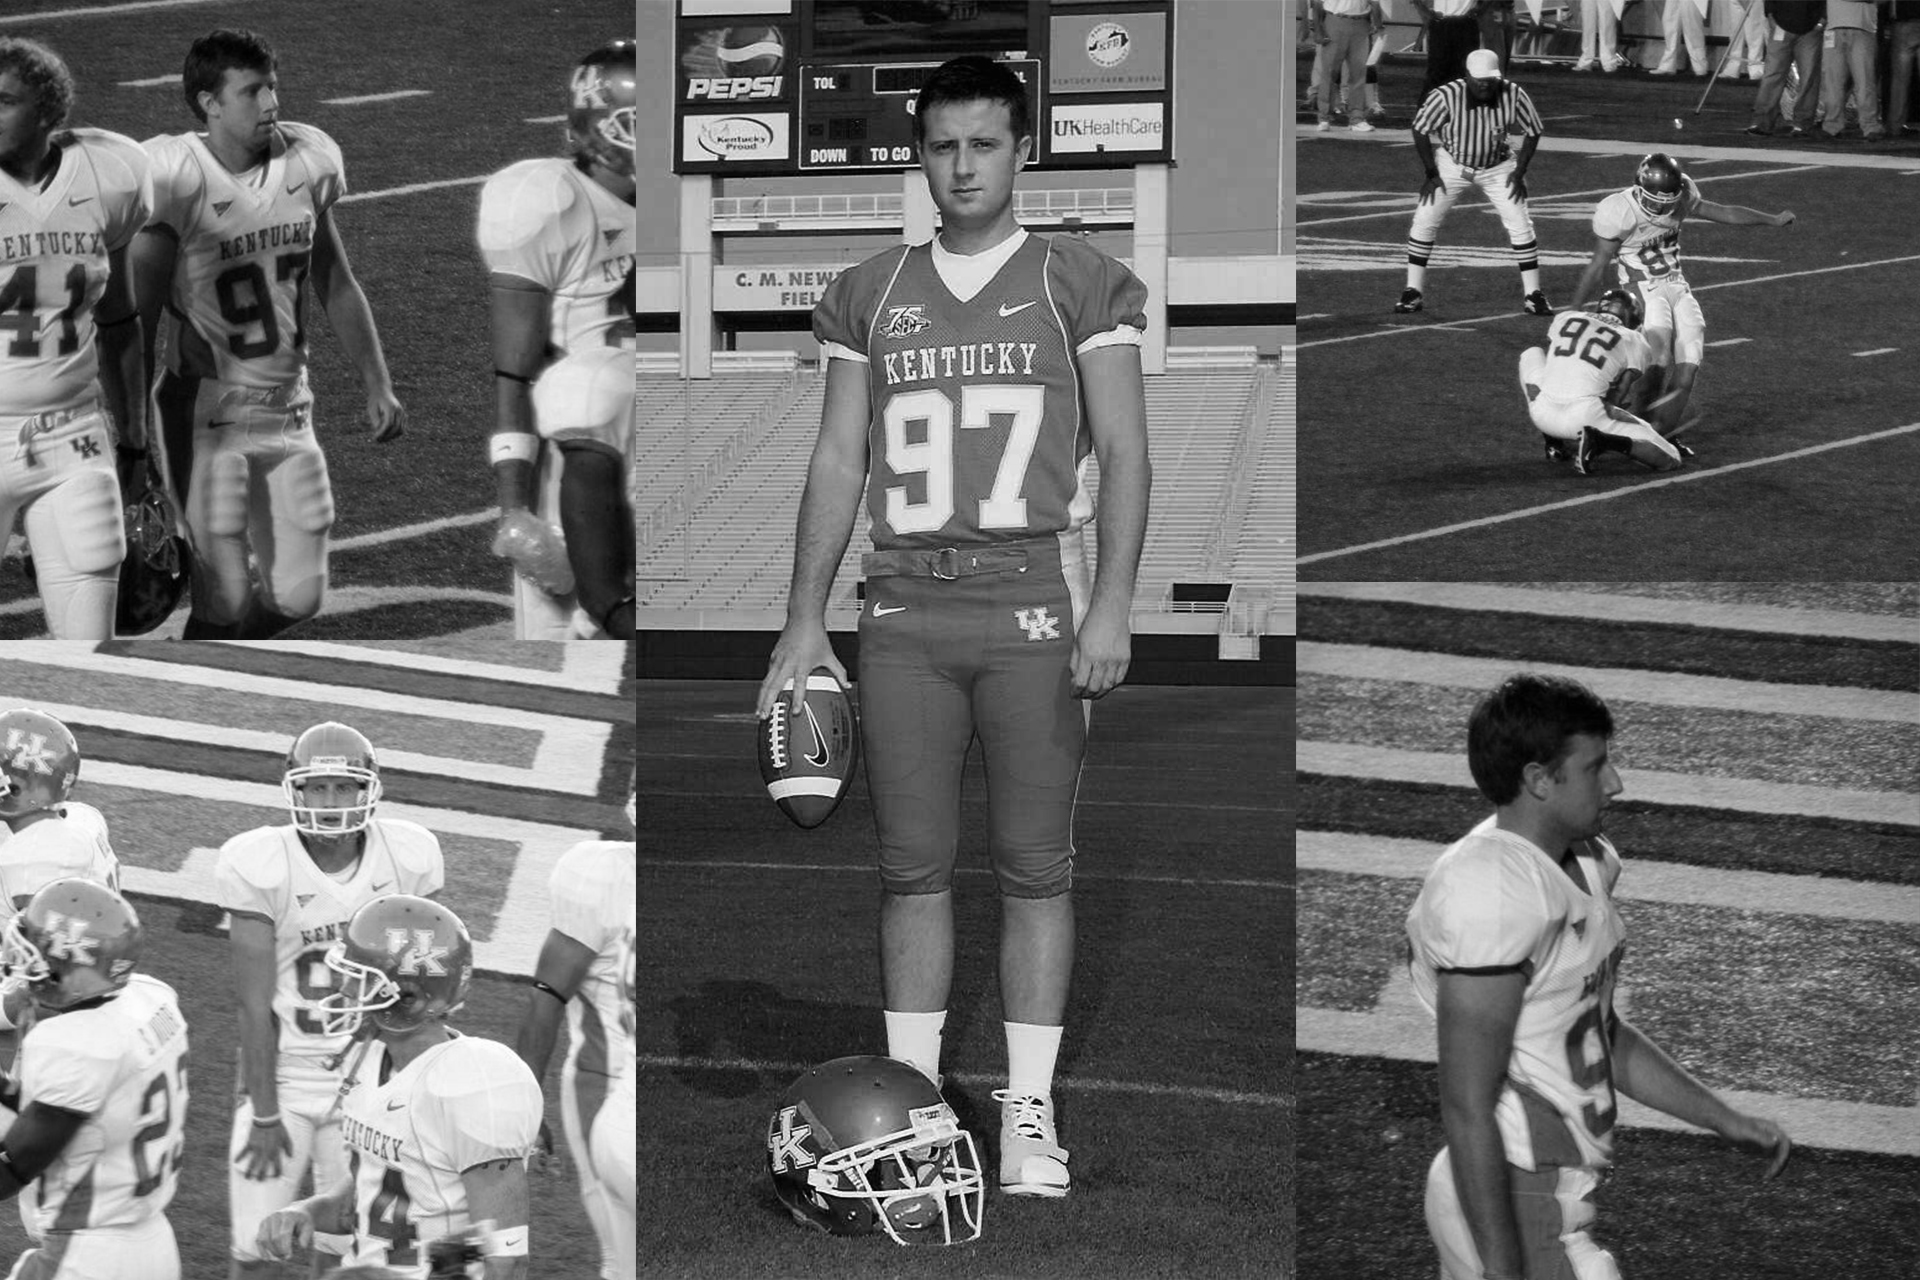 A black and white collage of photos showing JJ in his football uniform on the field playing.